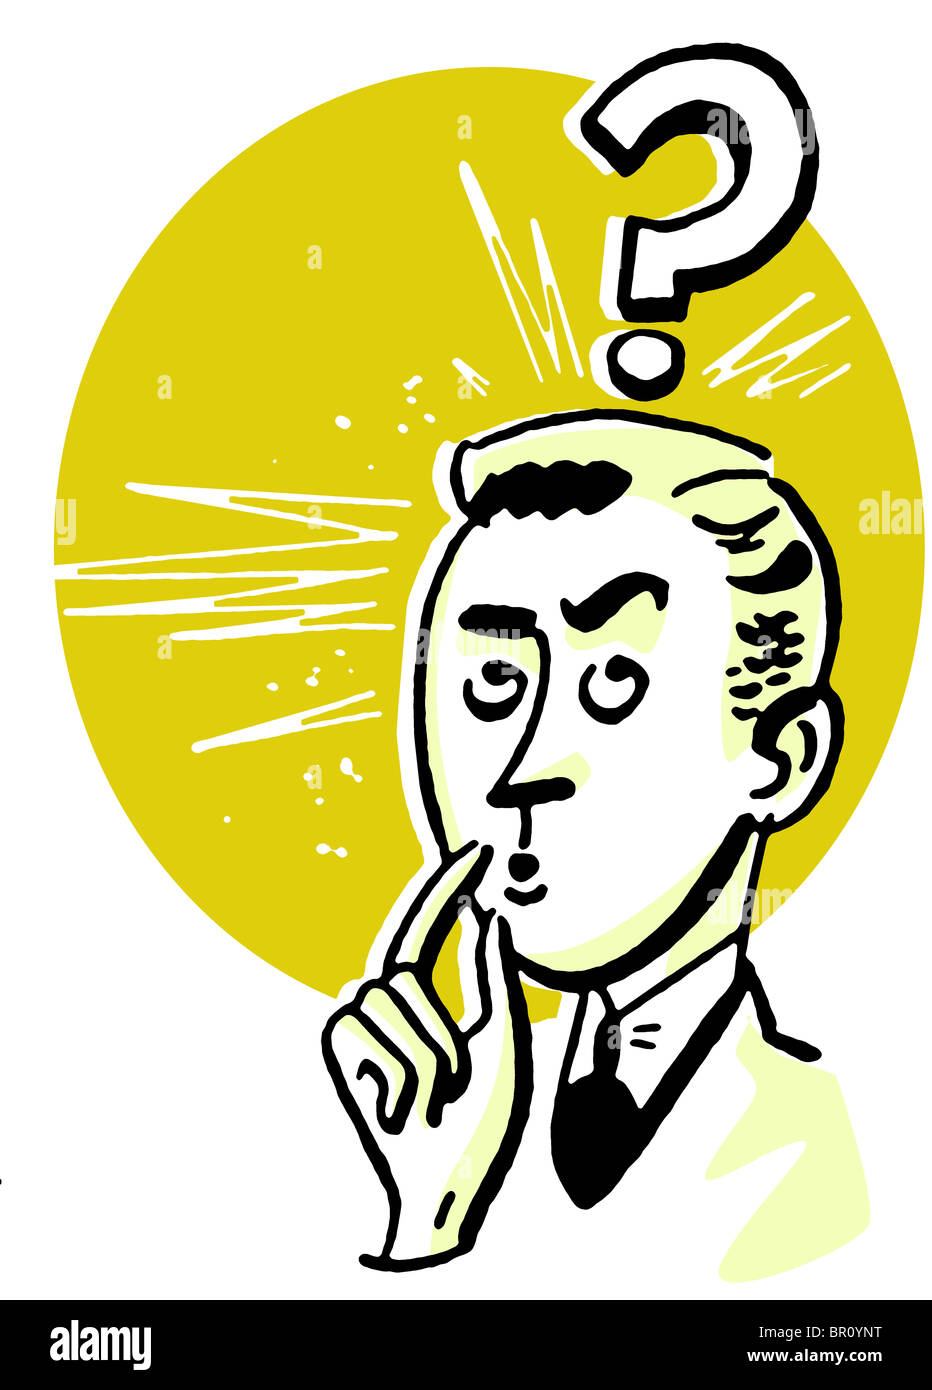 A Cartoon Style Drawing Of A Businessman With A Large Question Mark